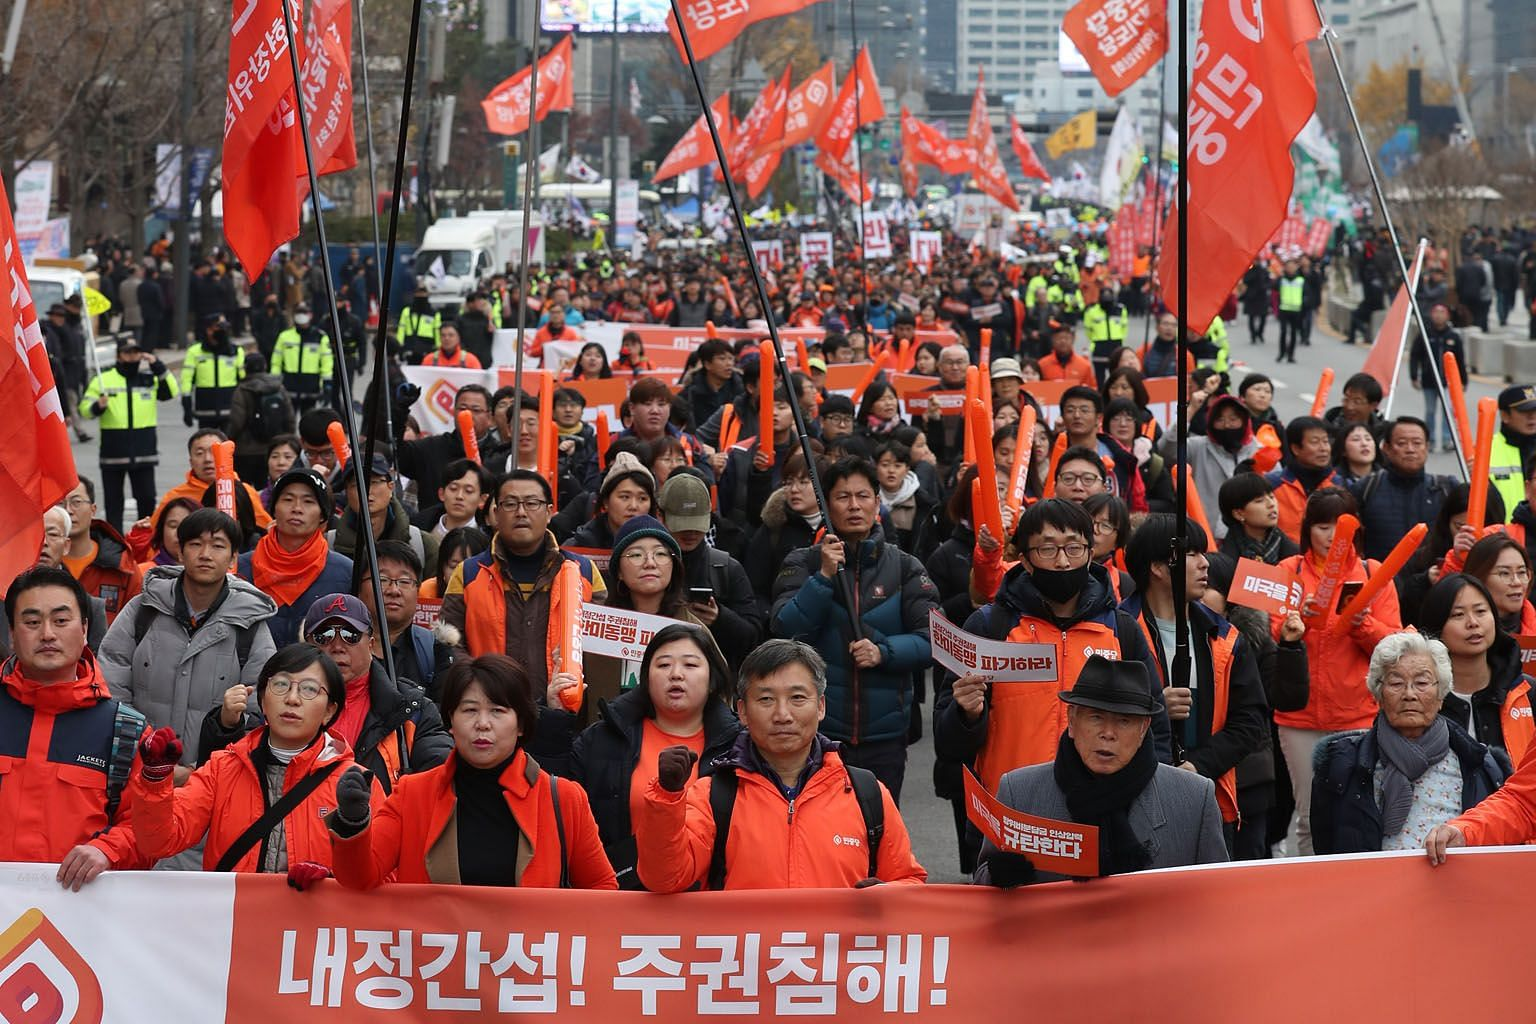 Members of South Korea's progressive Minjung Party protesting in Seoul last Saturday against Washington's push to increase South Korea's financial burden for the presence of American troops in the country. The writer says the Trump administration's demand